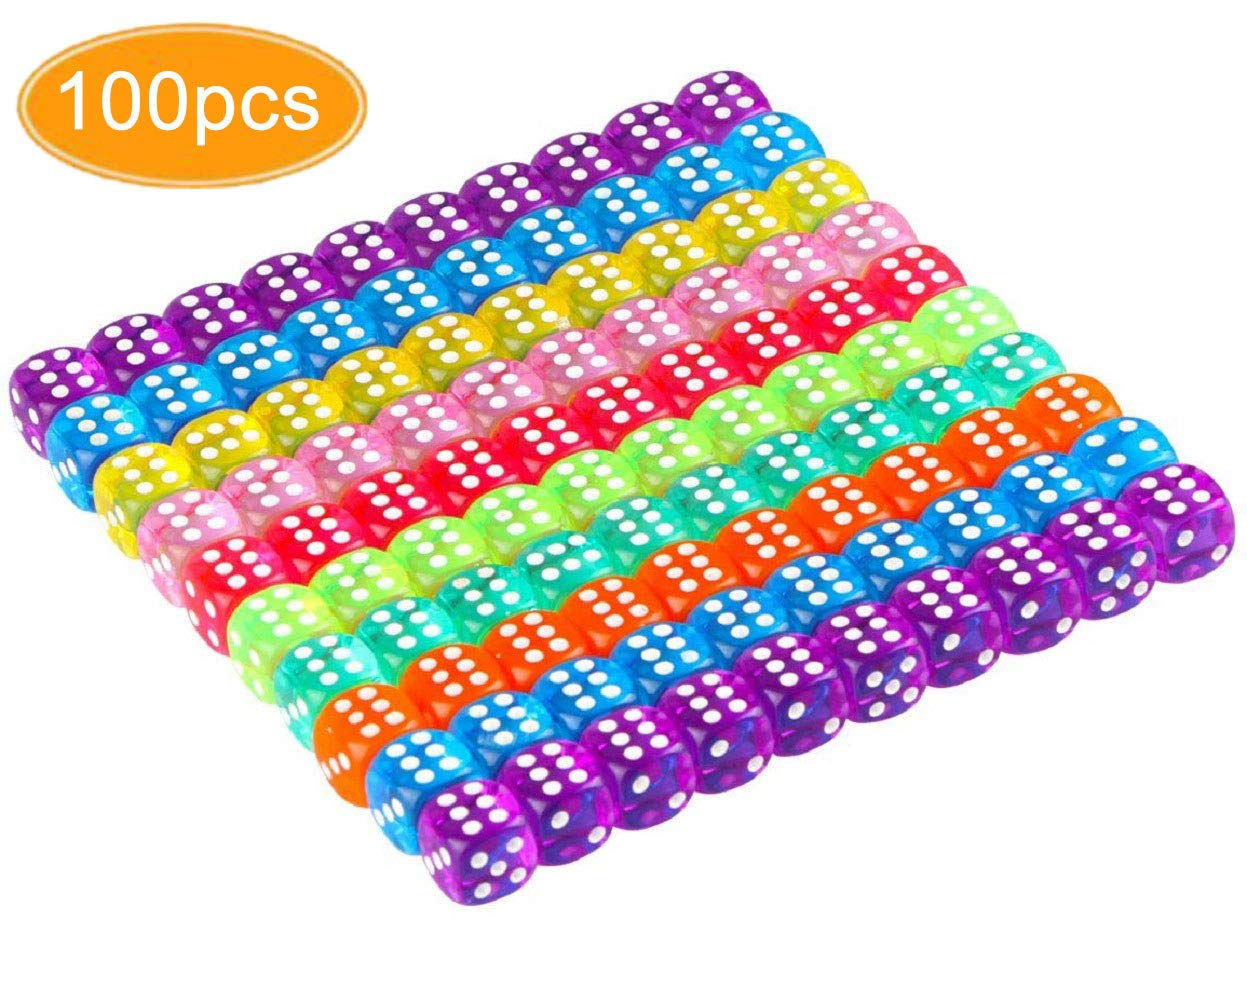 KISSBUTY 100 Pcs Translucent Colors 6-Sided Games Dice Set, 14 mm Round Corner Dice for Playing Games, Like Board Games, Dice Games, Party Favors, Gifts by KISSBUTY